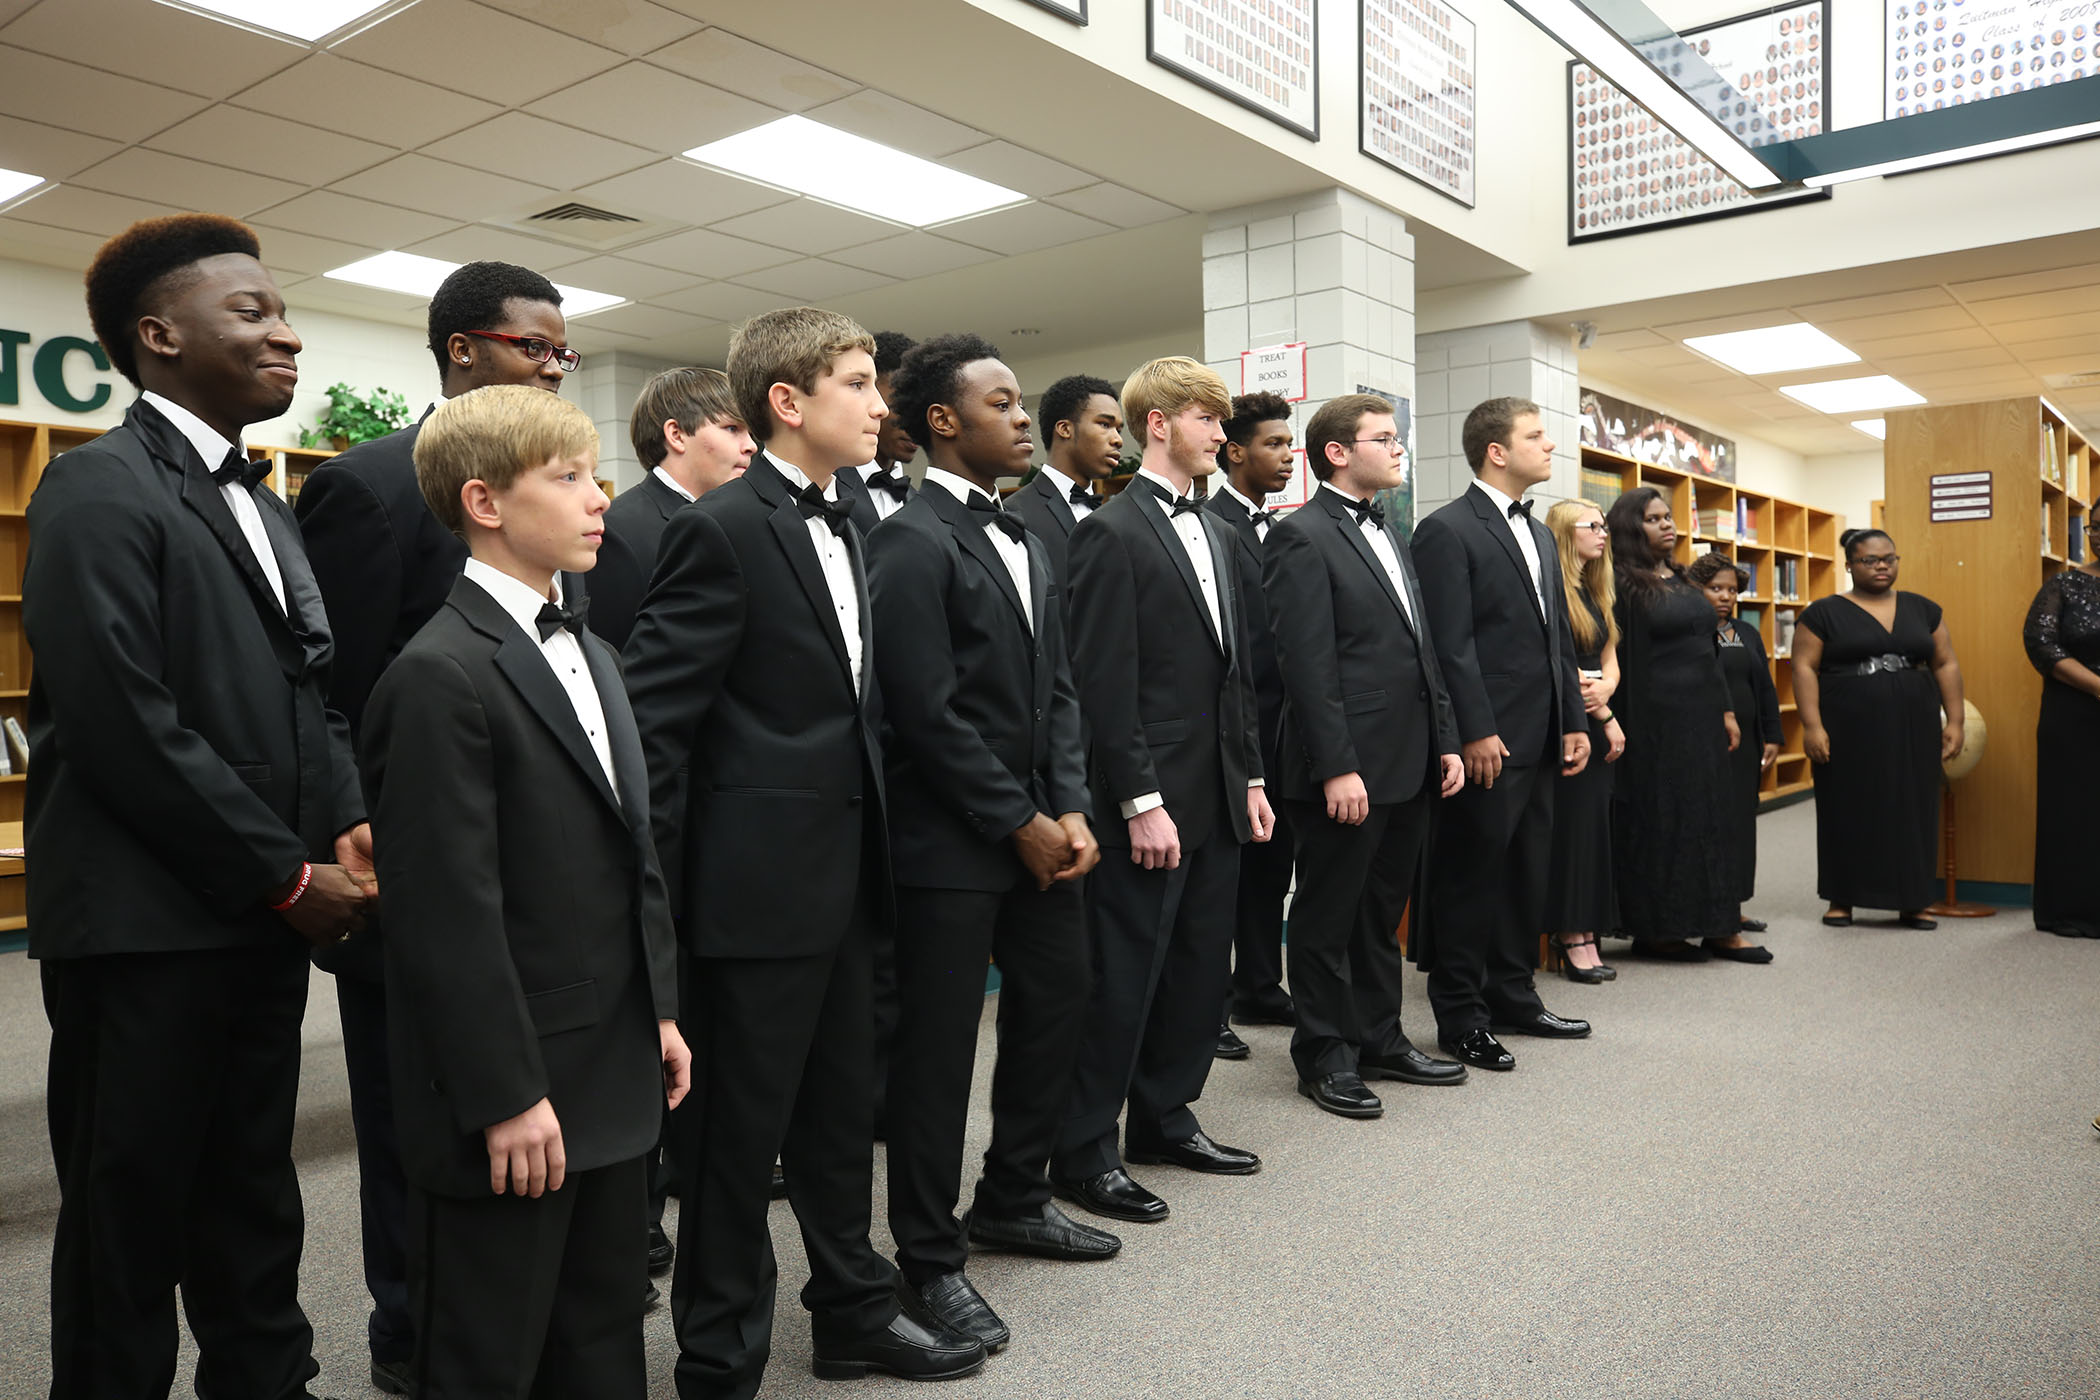 QHS Chorus performs in the QHS Library.